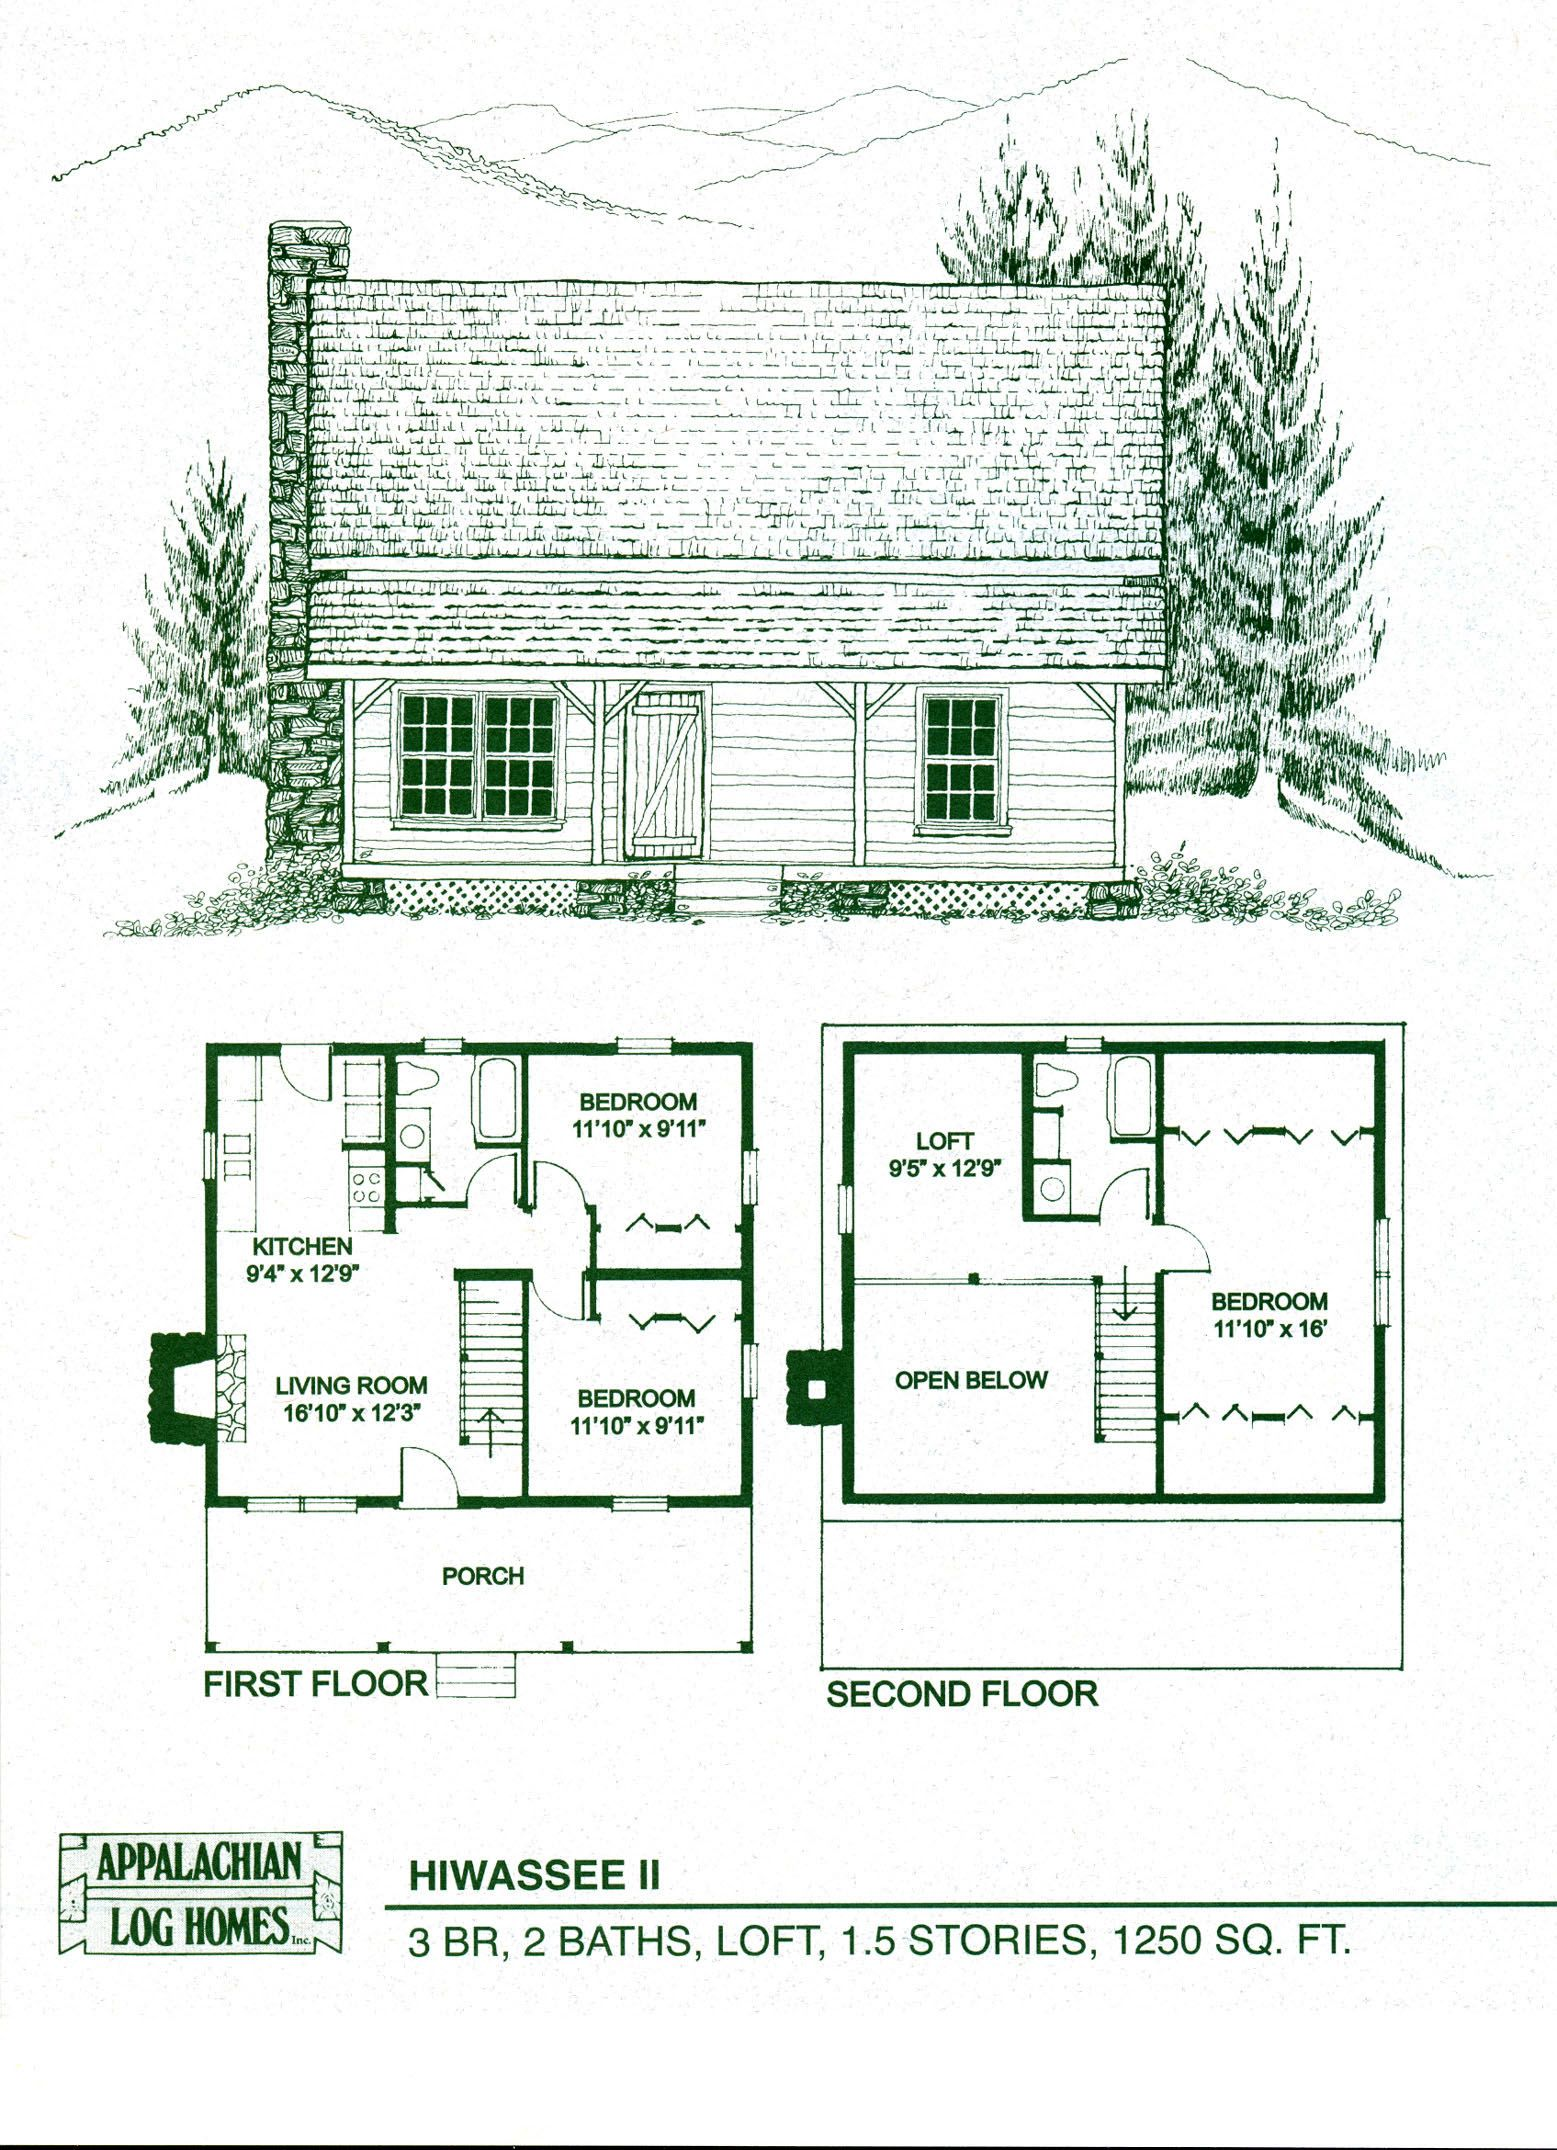 Log Home Floor Plans   Log Cabin Kits   Appalachian Log Homes Part 64